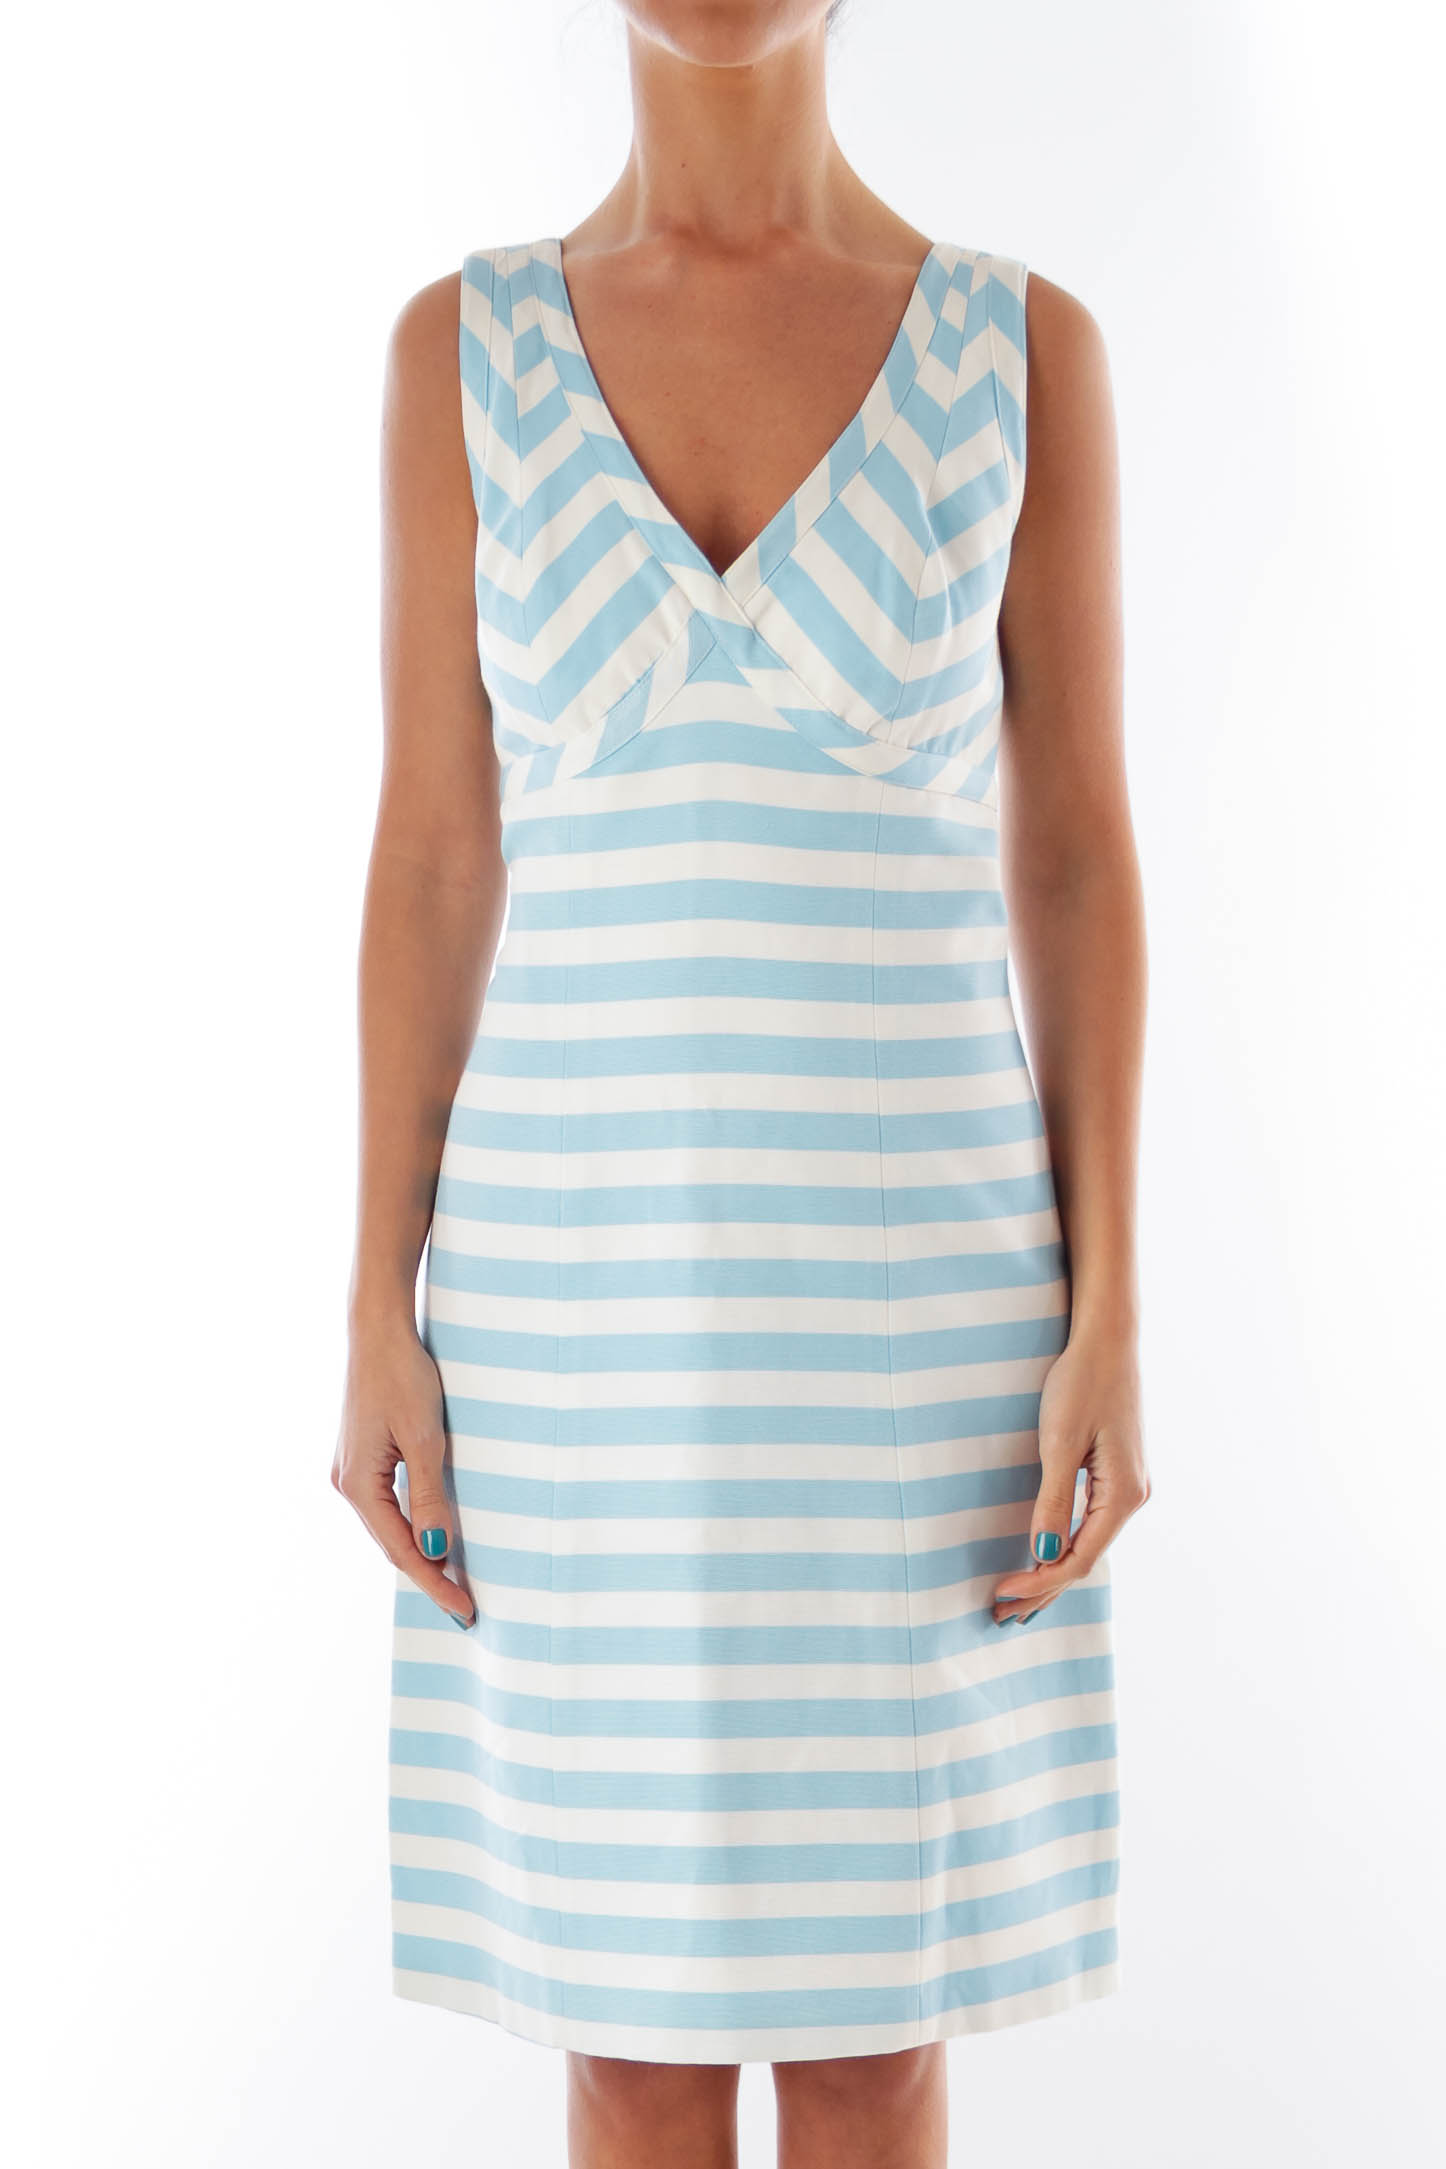 White & Blue Stripe Dress